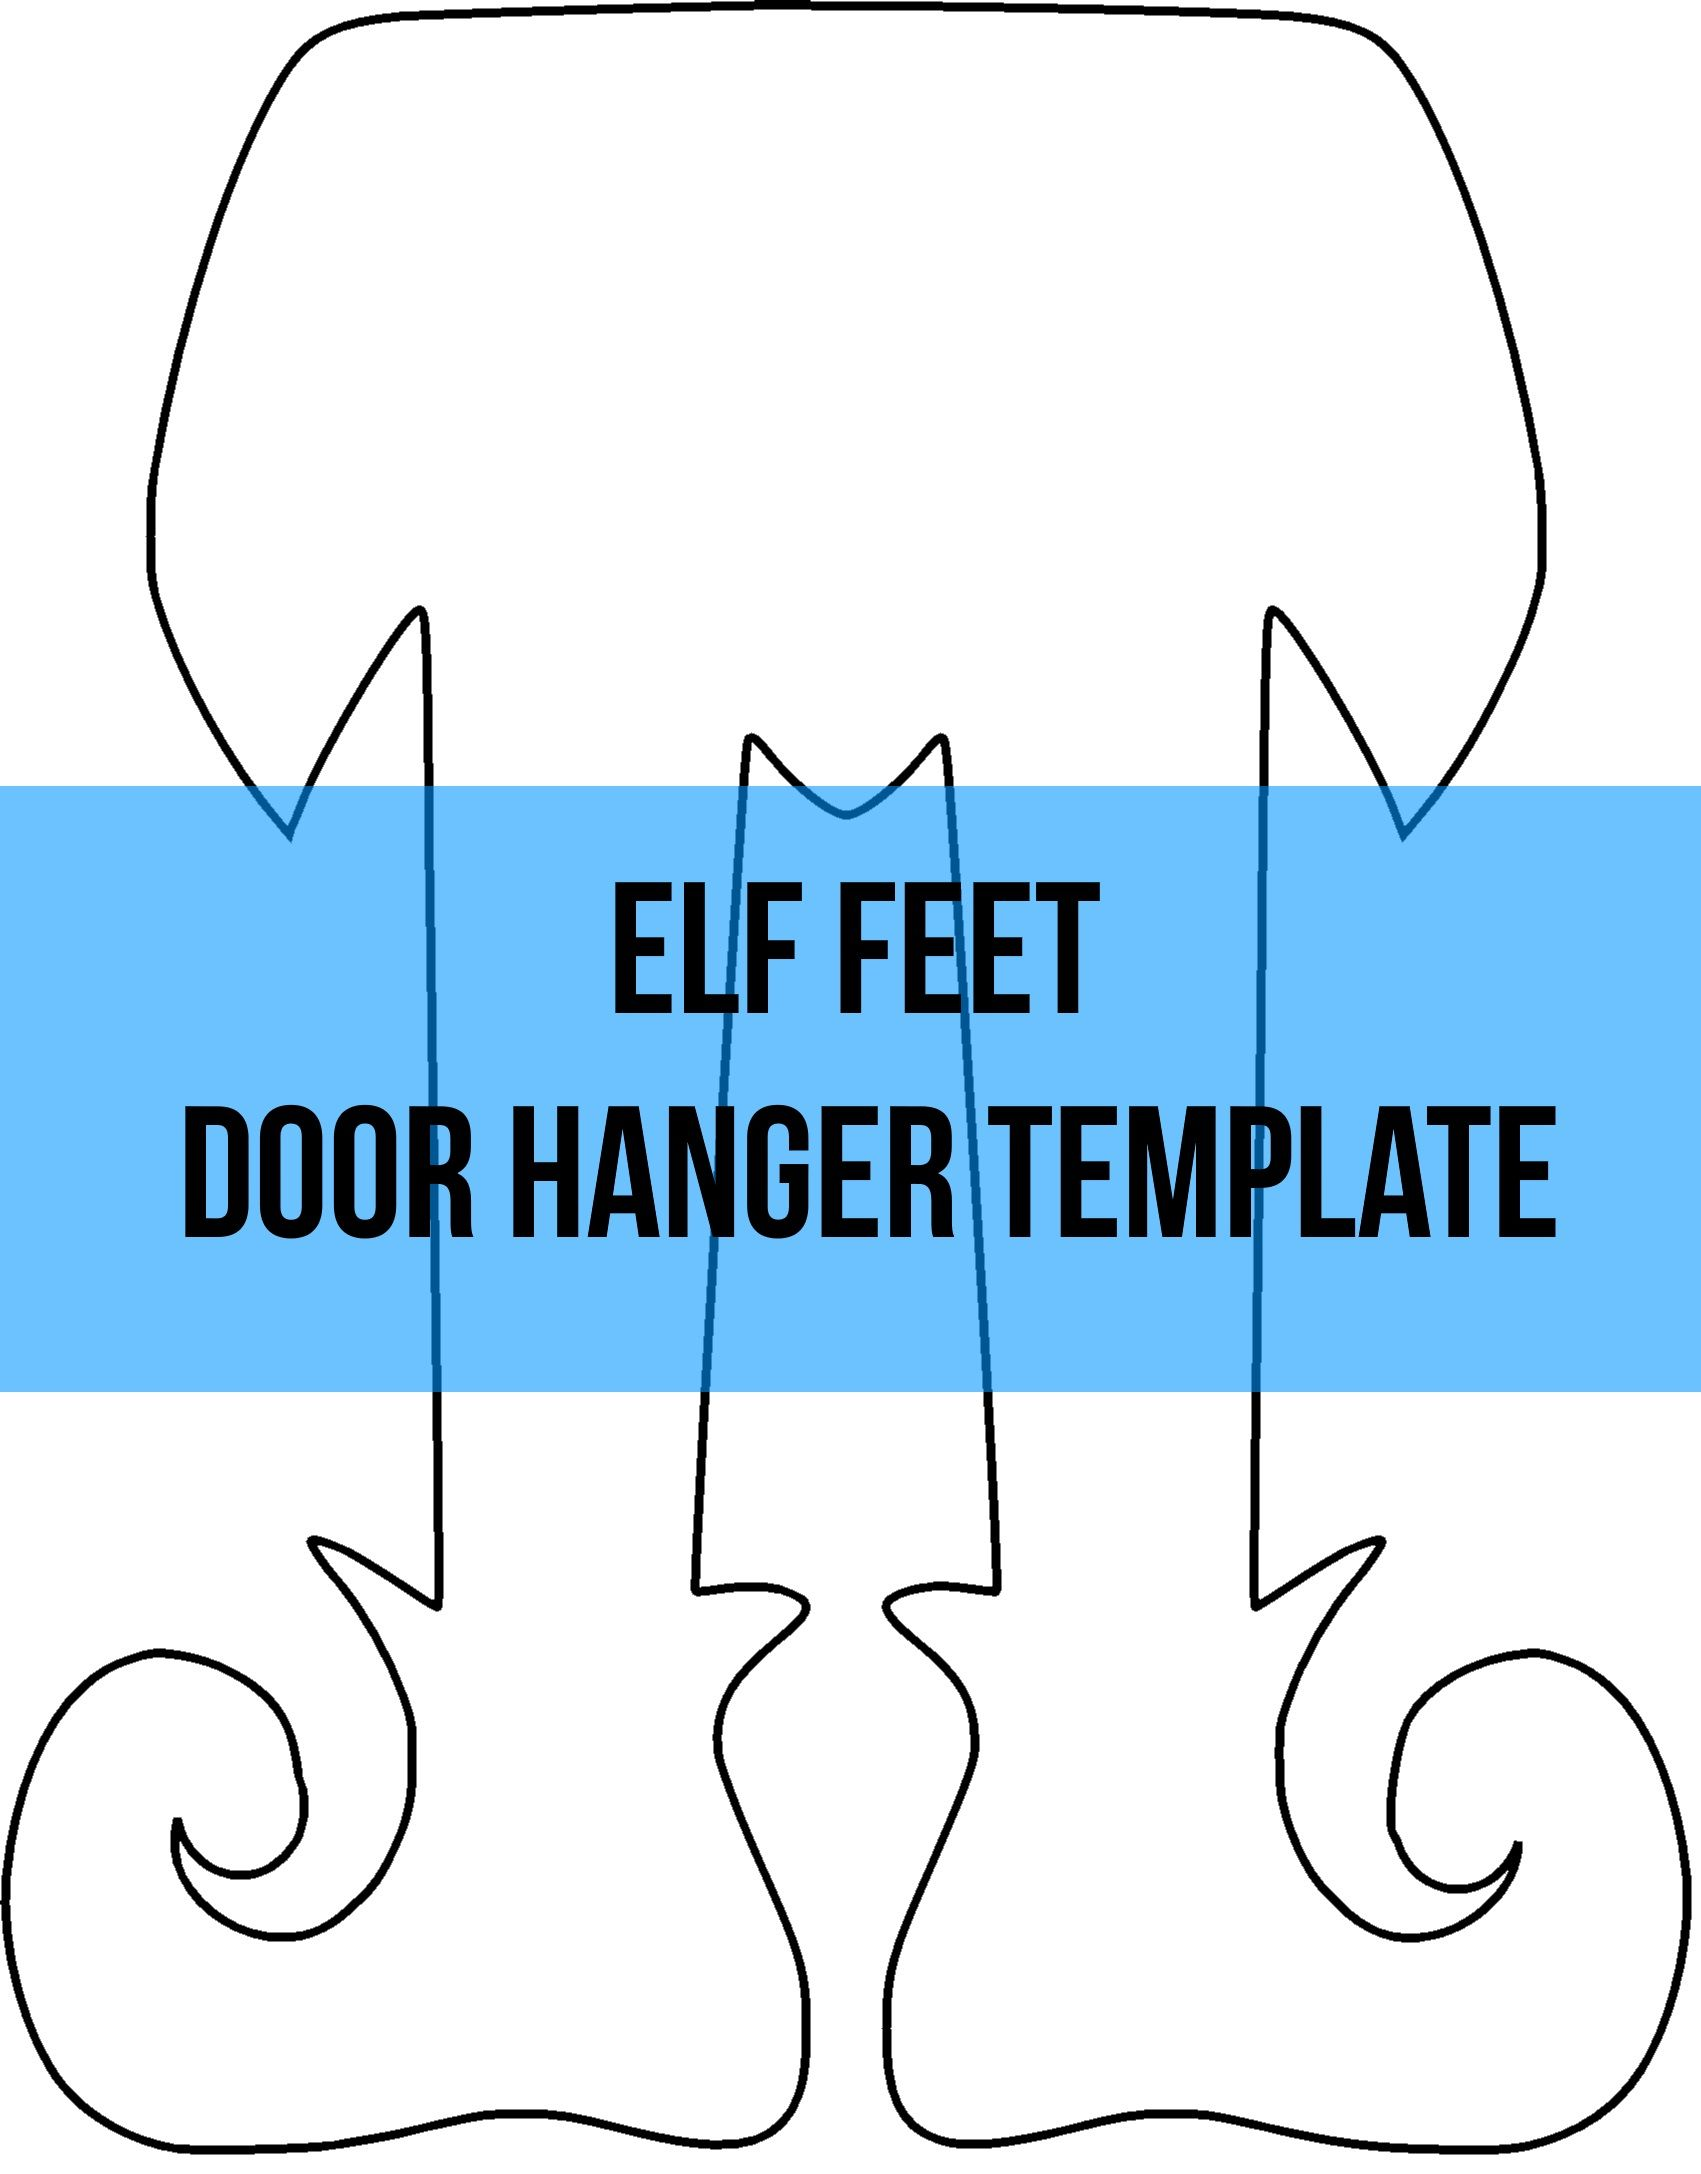 Elf Feet Door Hanger Wreath Attachment Template Door